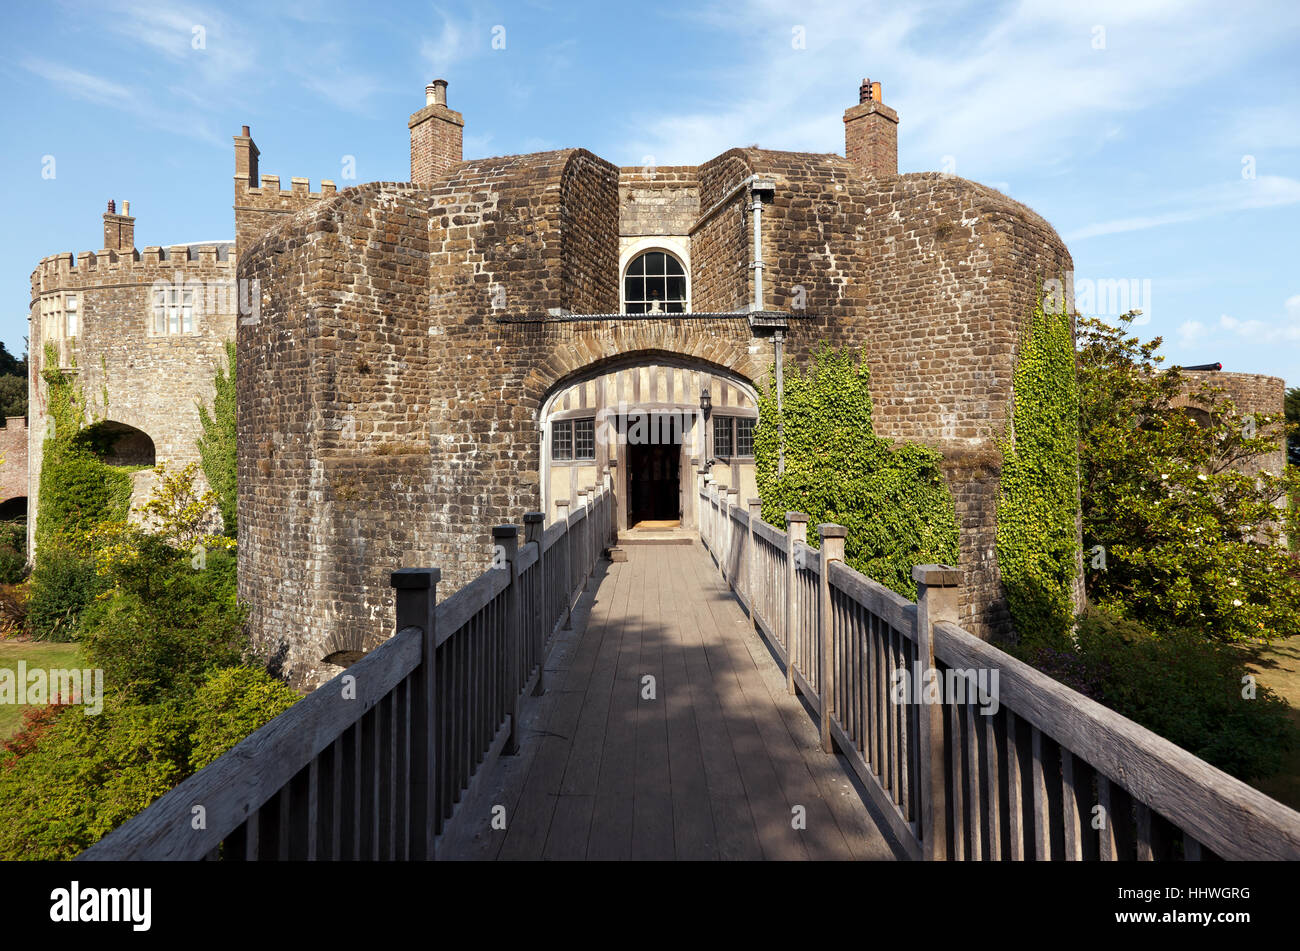 Rear view of Walmer Castle with the   wooden bridge over the mote. - Stock Image